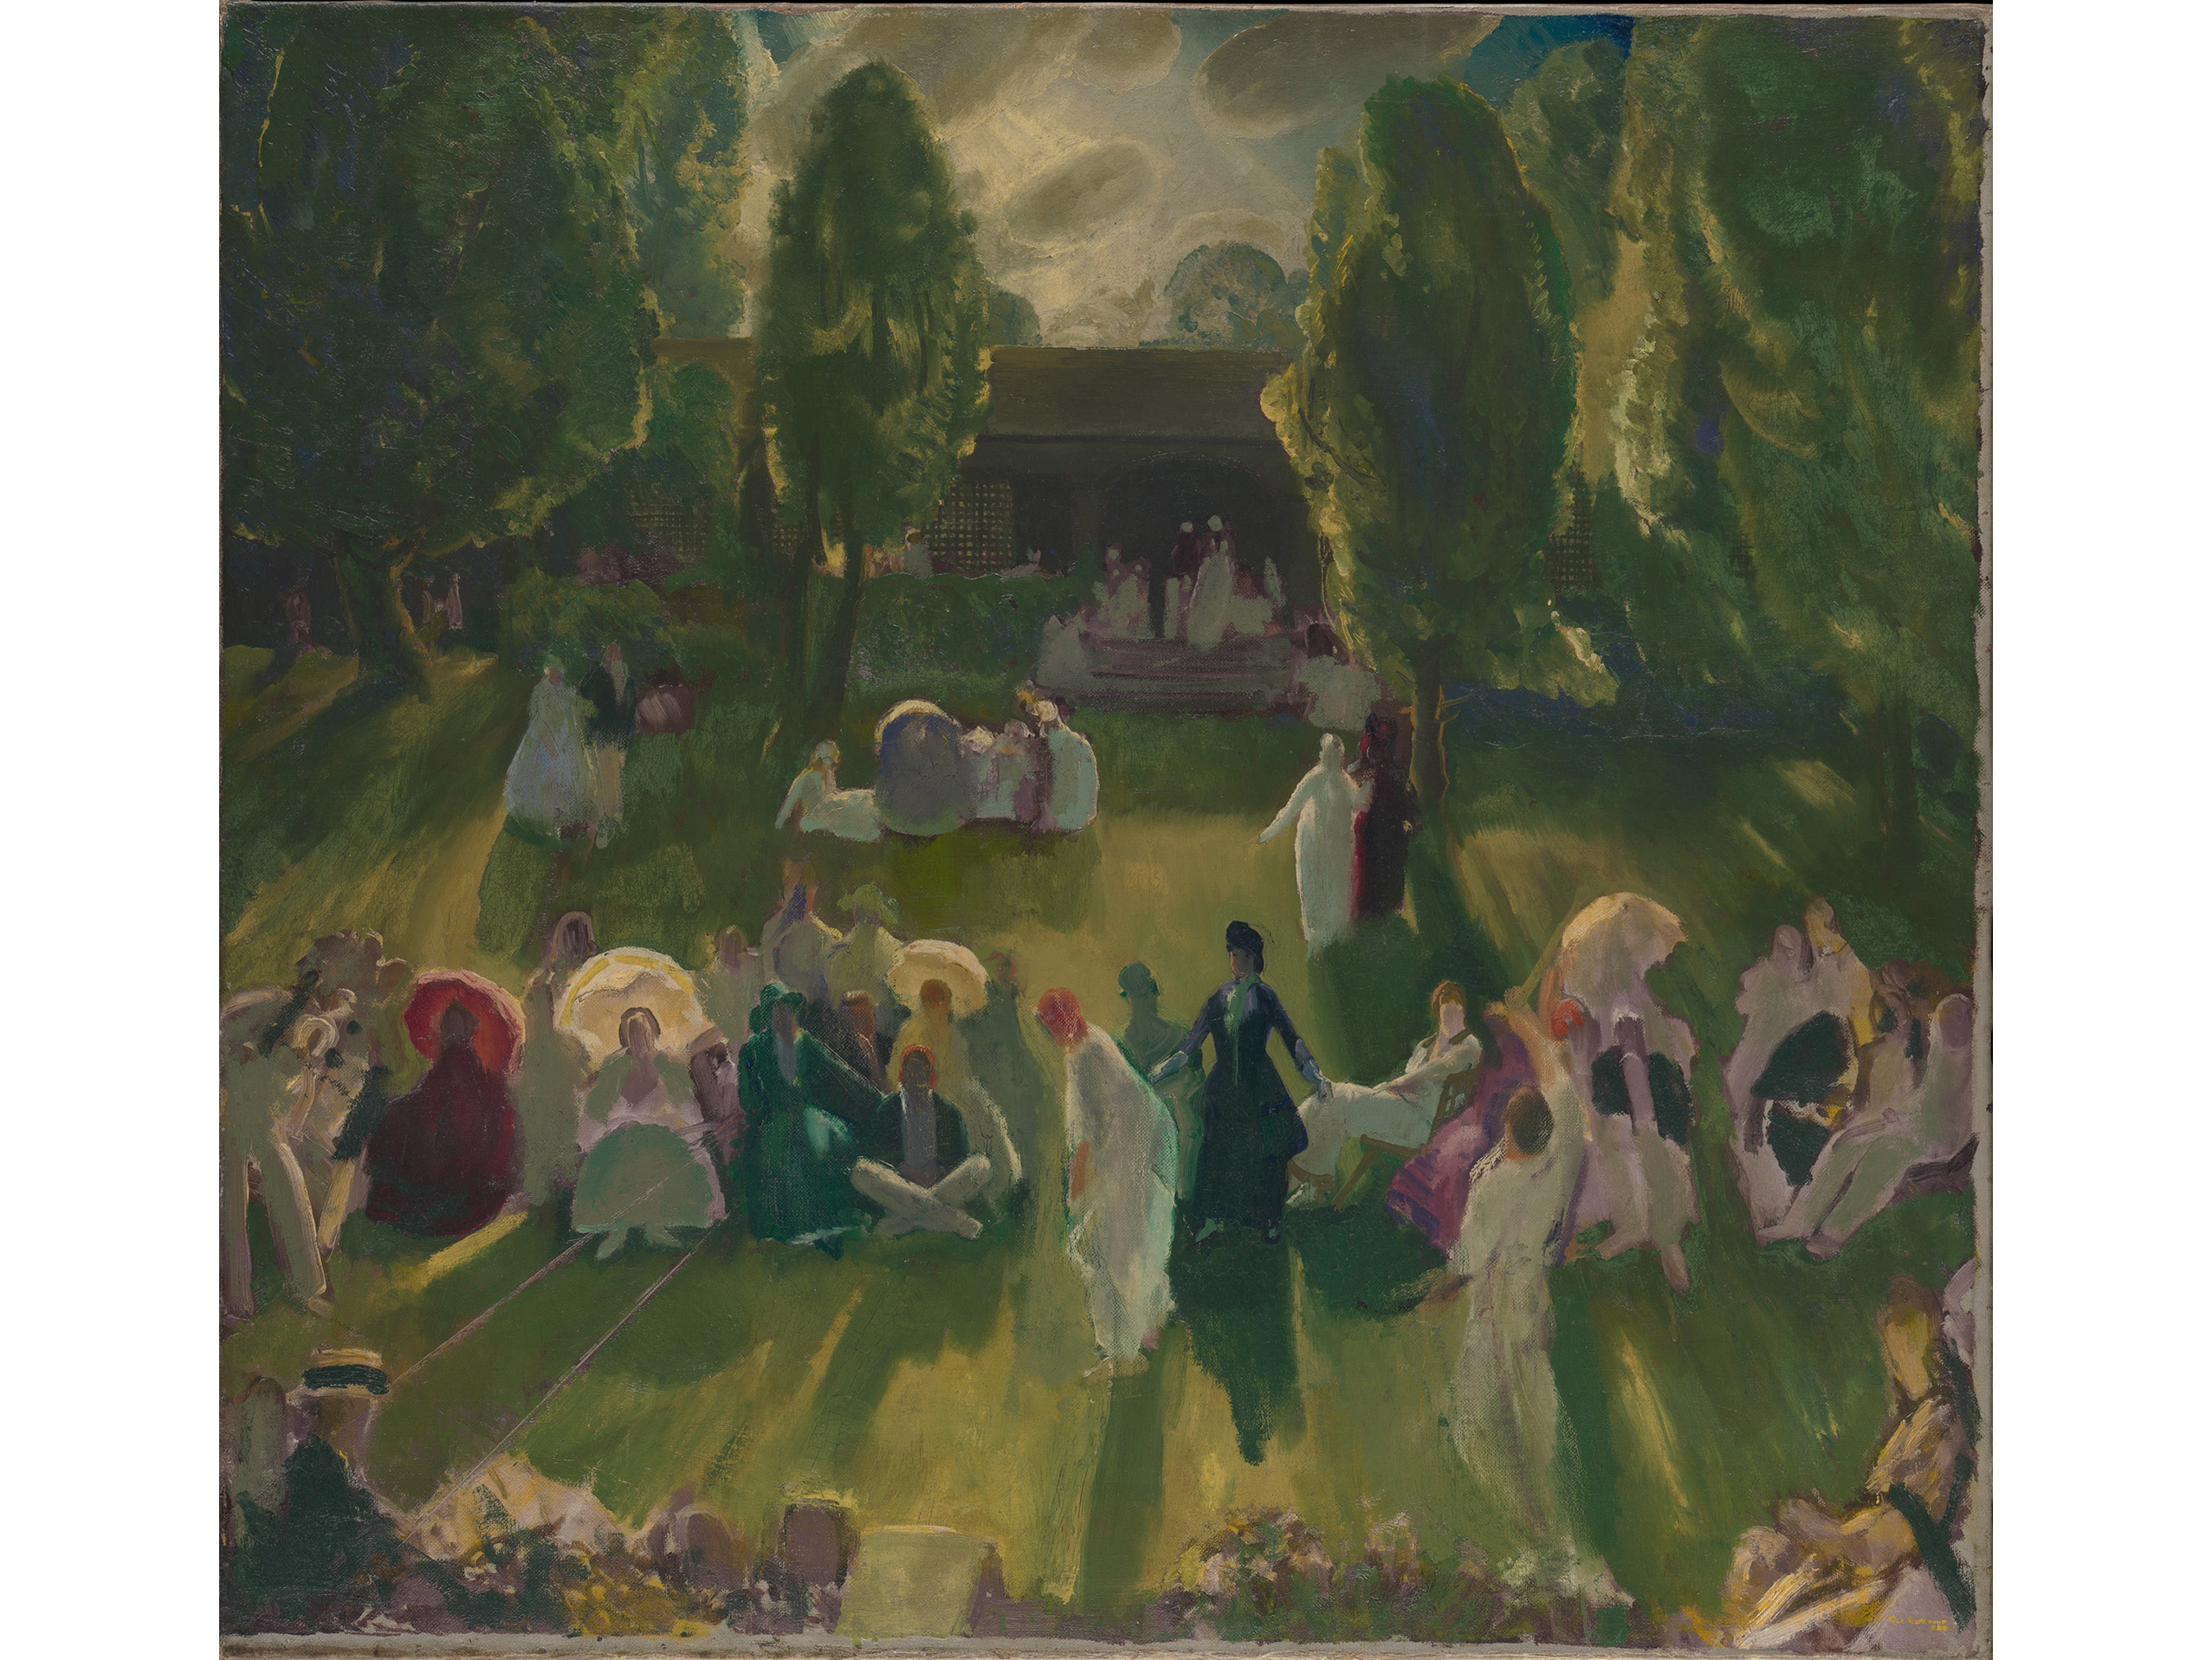 Tennis at Newport (1919), George Bellows